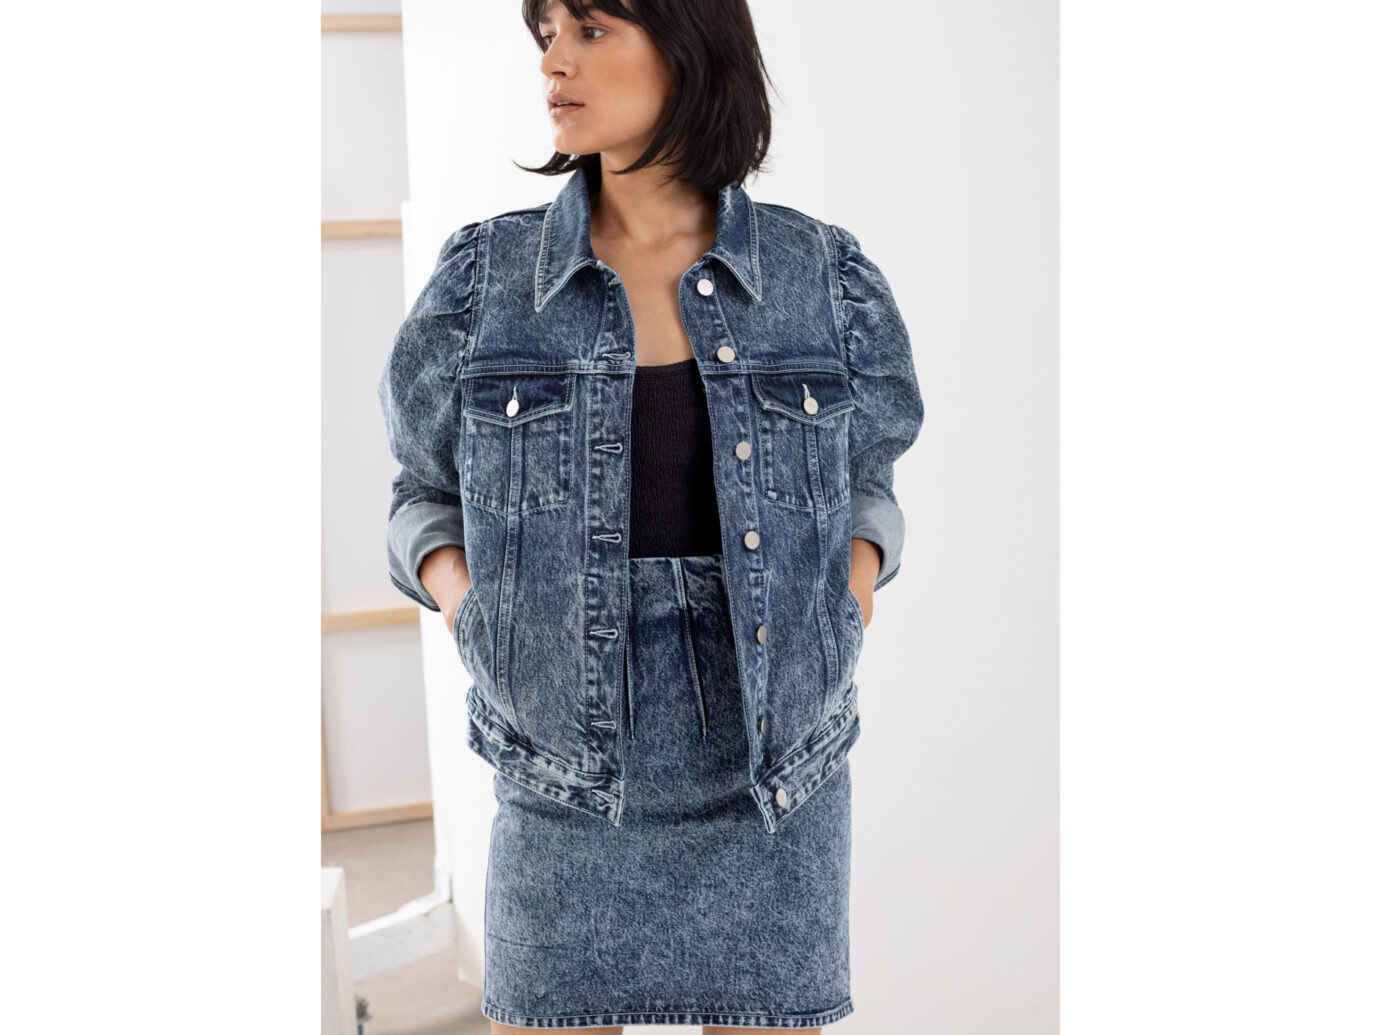 & Other Stories Puff Shoulder Denim Jacket